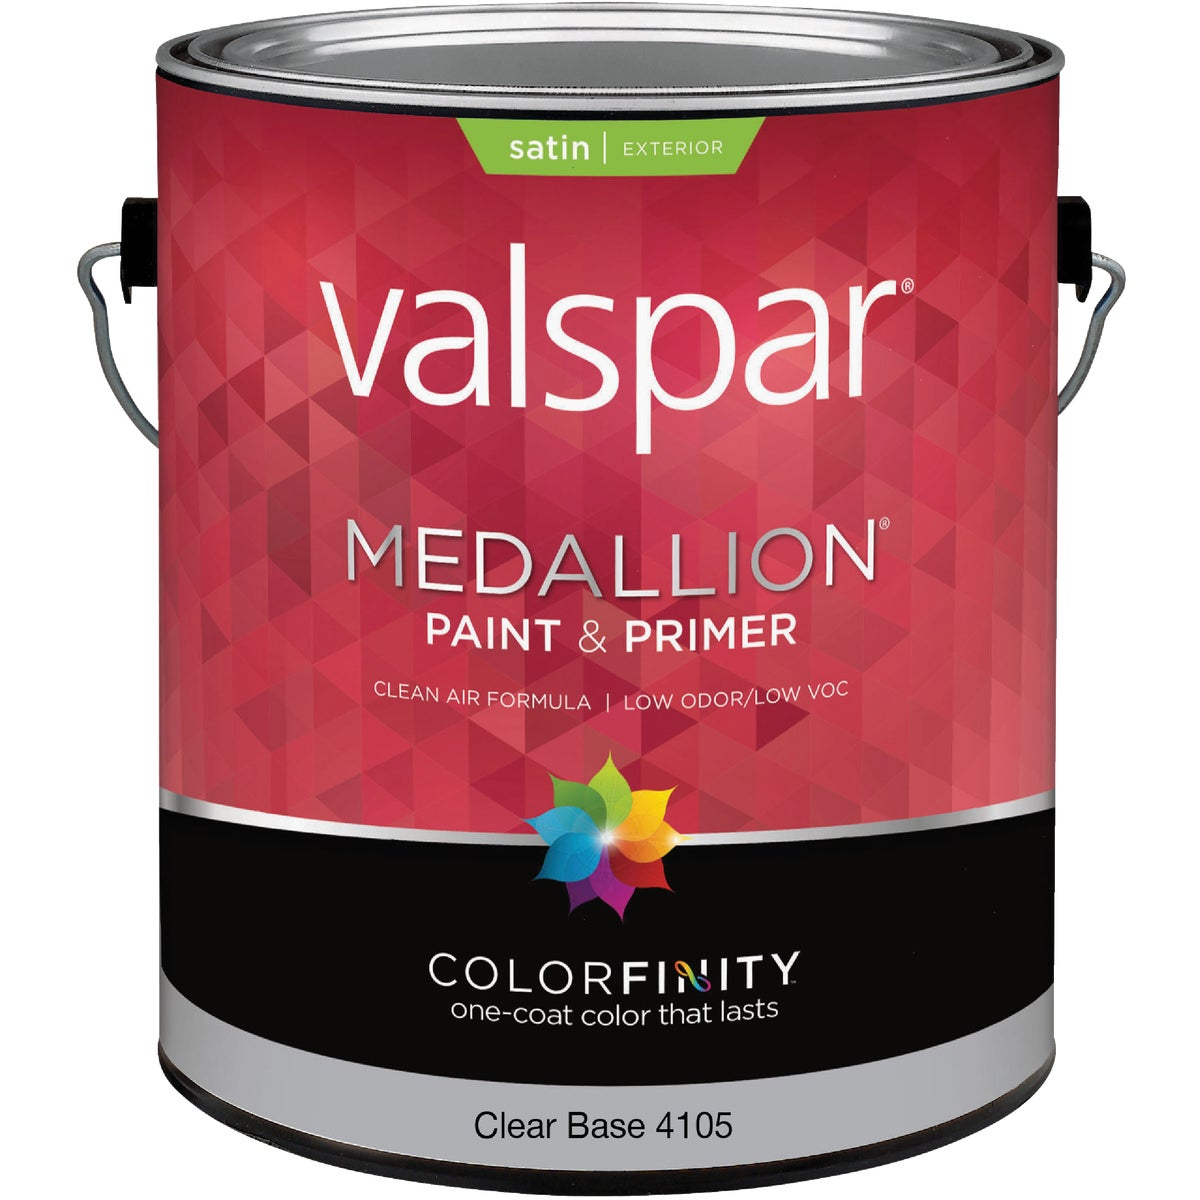 EXT SAT CLEAR BS PAINT - 027.0004105.007 by Valspar Corp